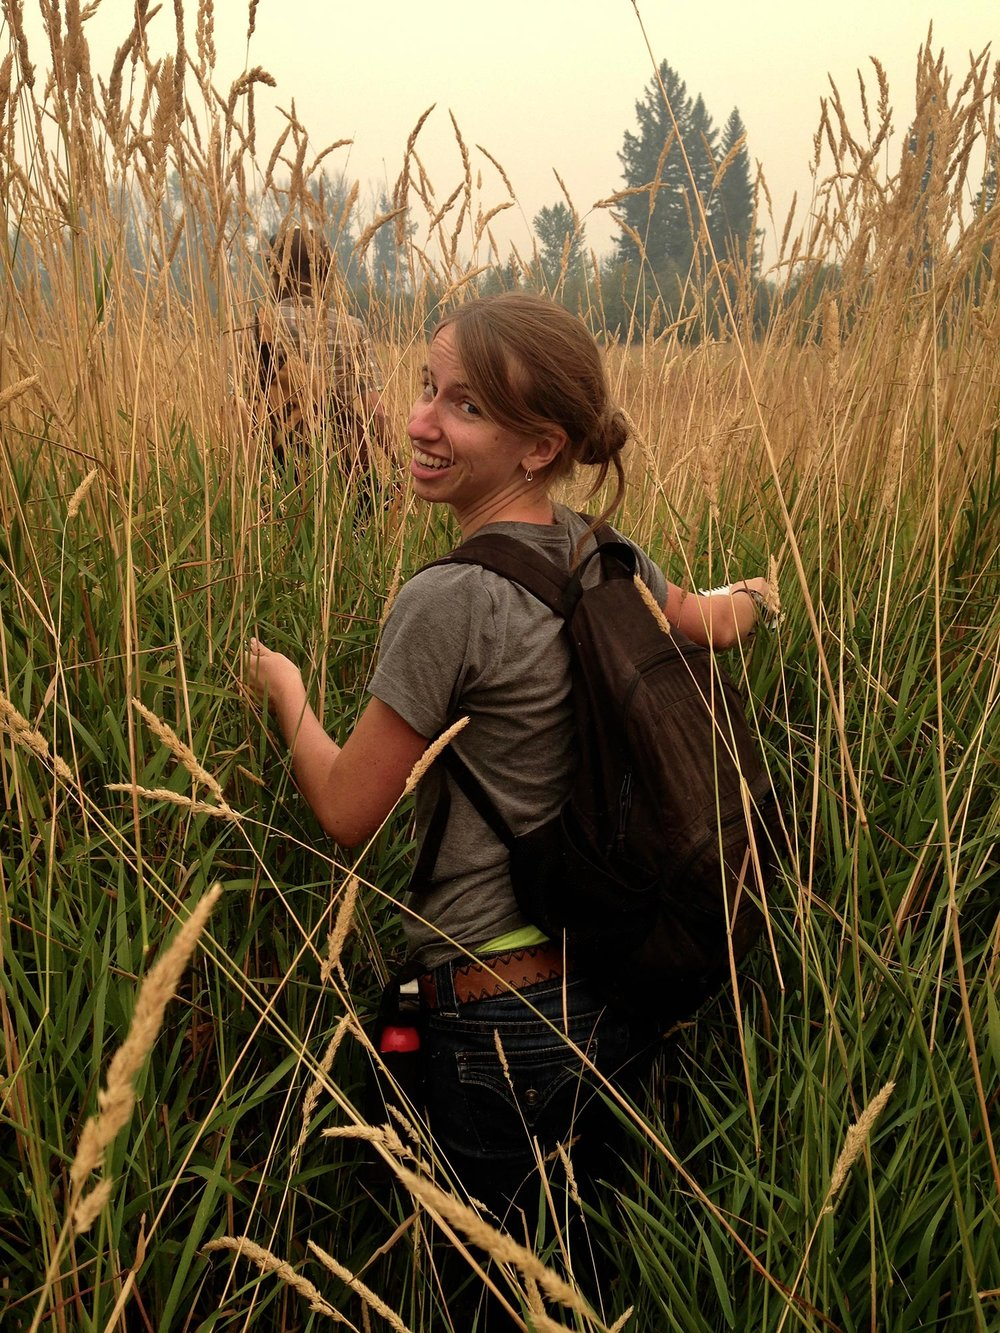 Anna wading through the reed canary grass on our way to the river for the first day of Watershed Dynamics